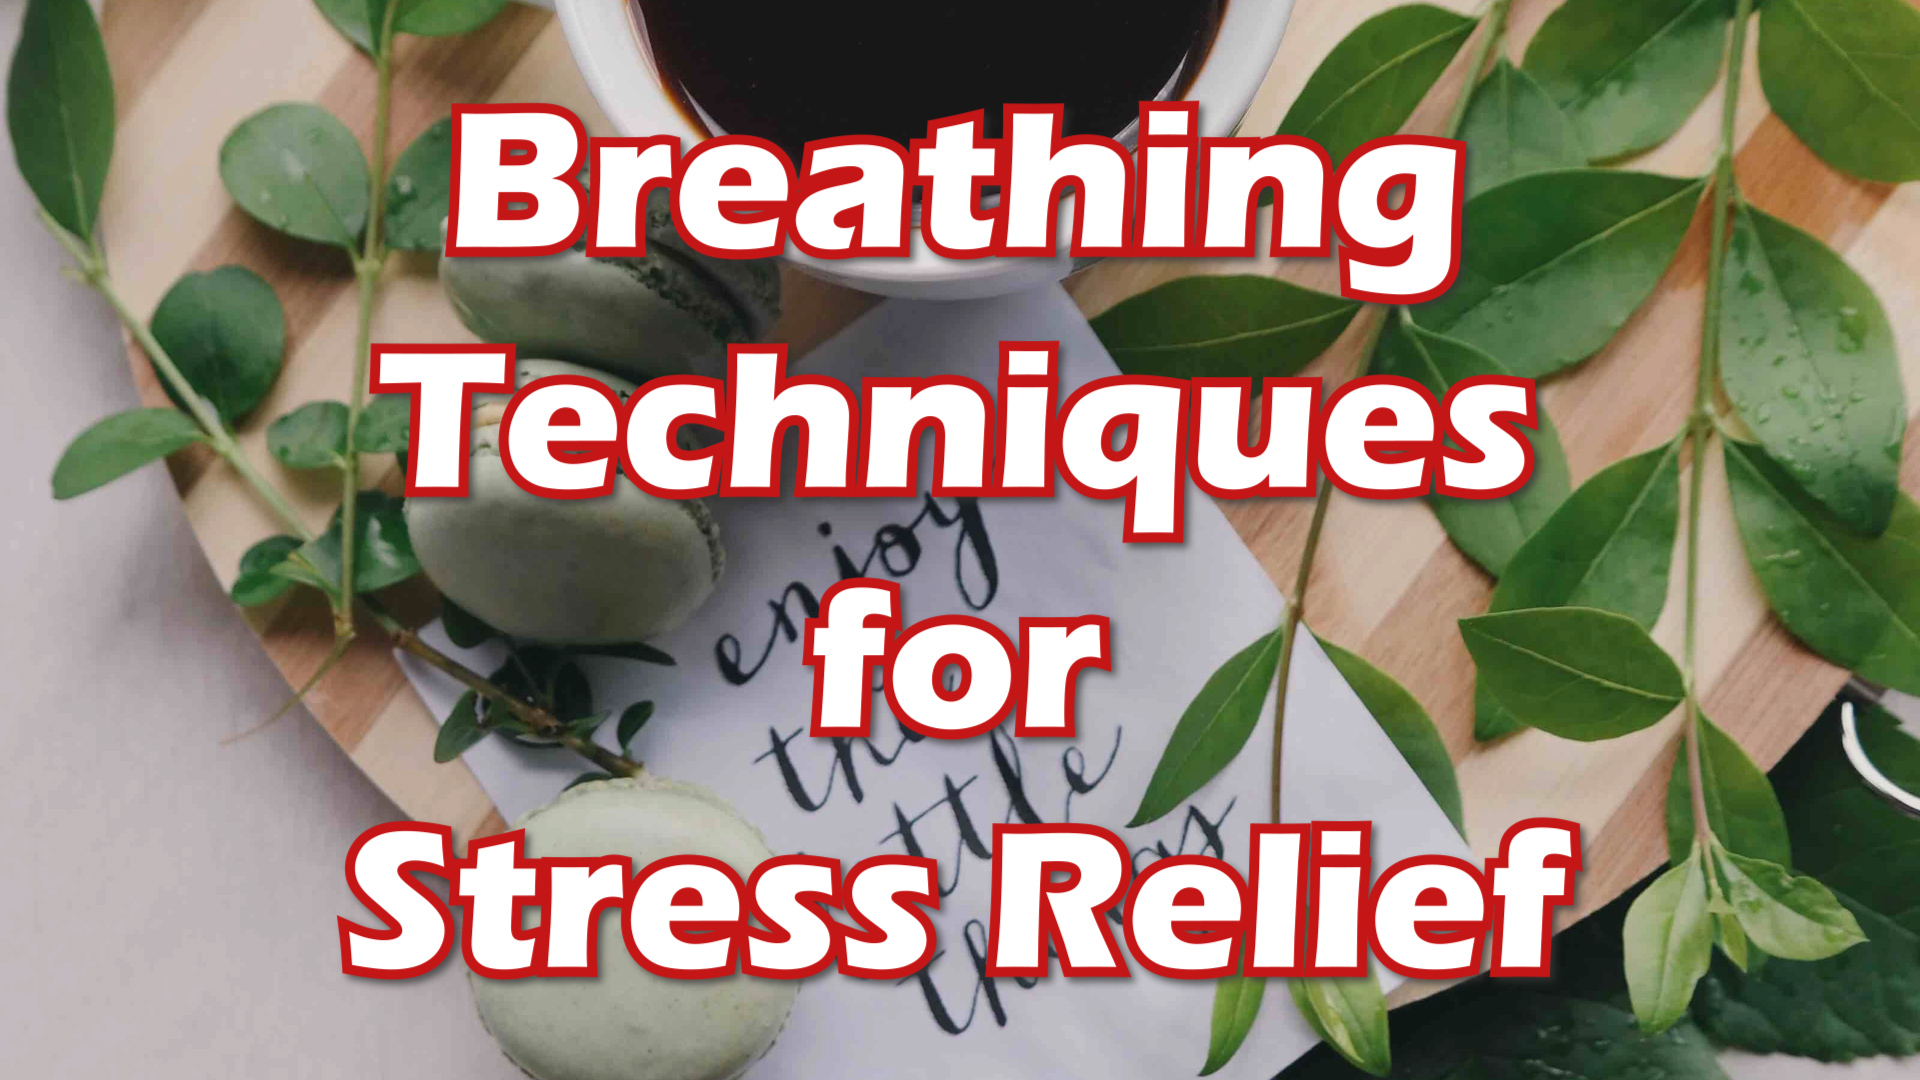 Breathing Techniques for Stress Relief thumbnail